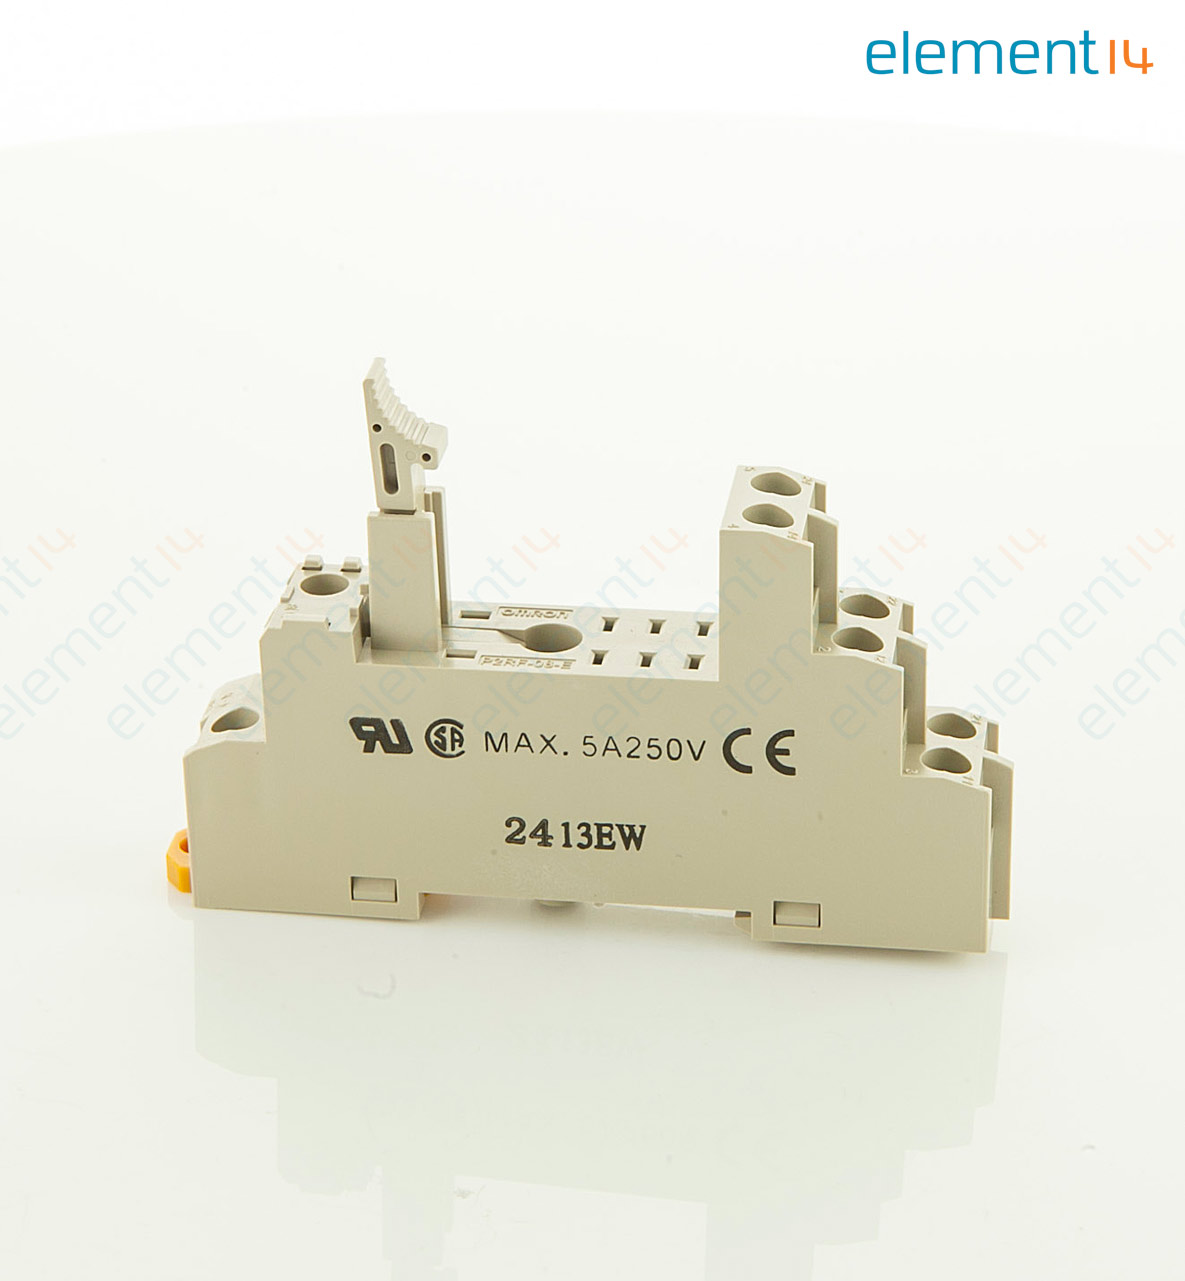 P2rf 08 E Omron Industrial Automation Relay Socket Din Rail Screw Current 8 Pins 5 A 250 Vac